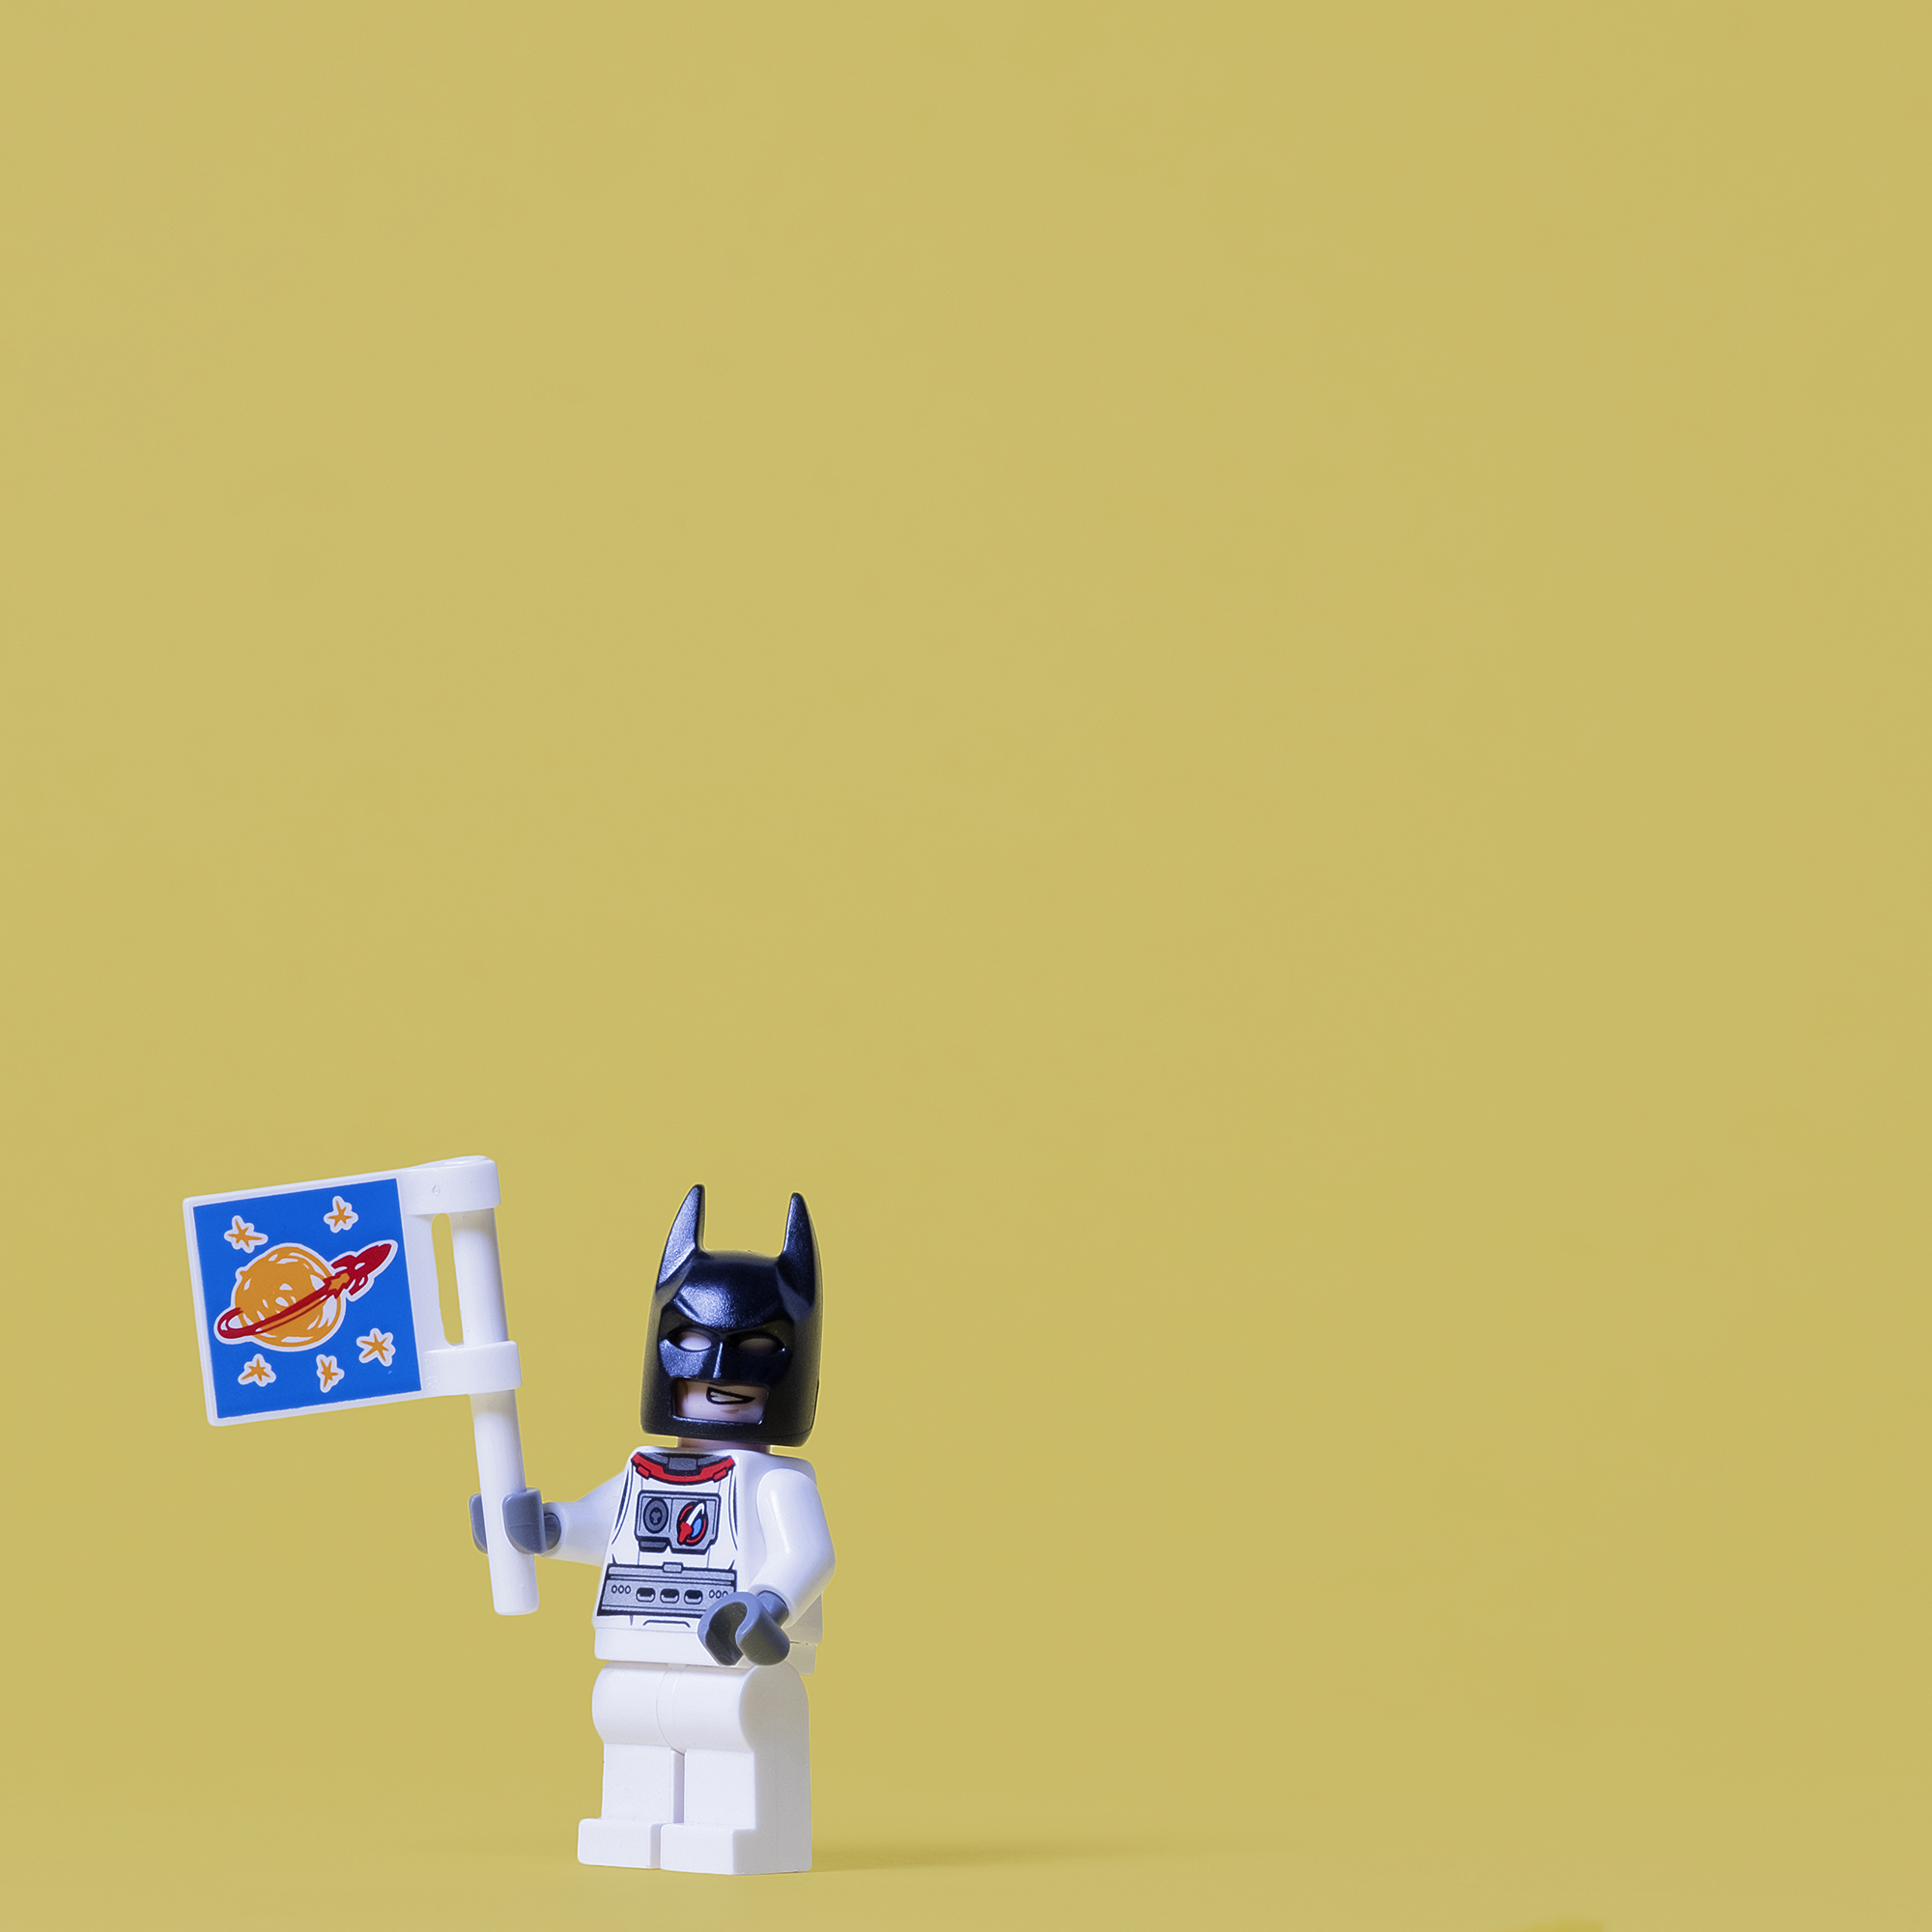 Lego_Photography_Personal_Project_02.jpg